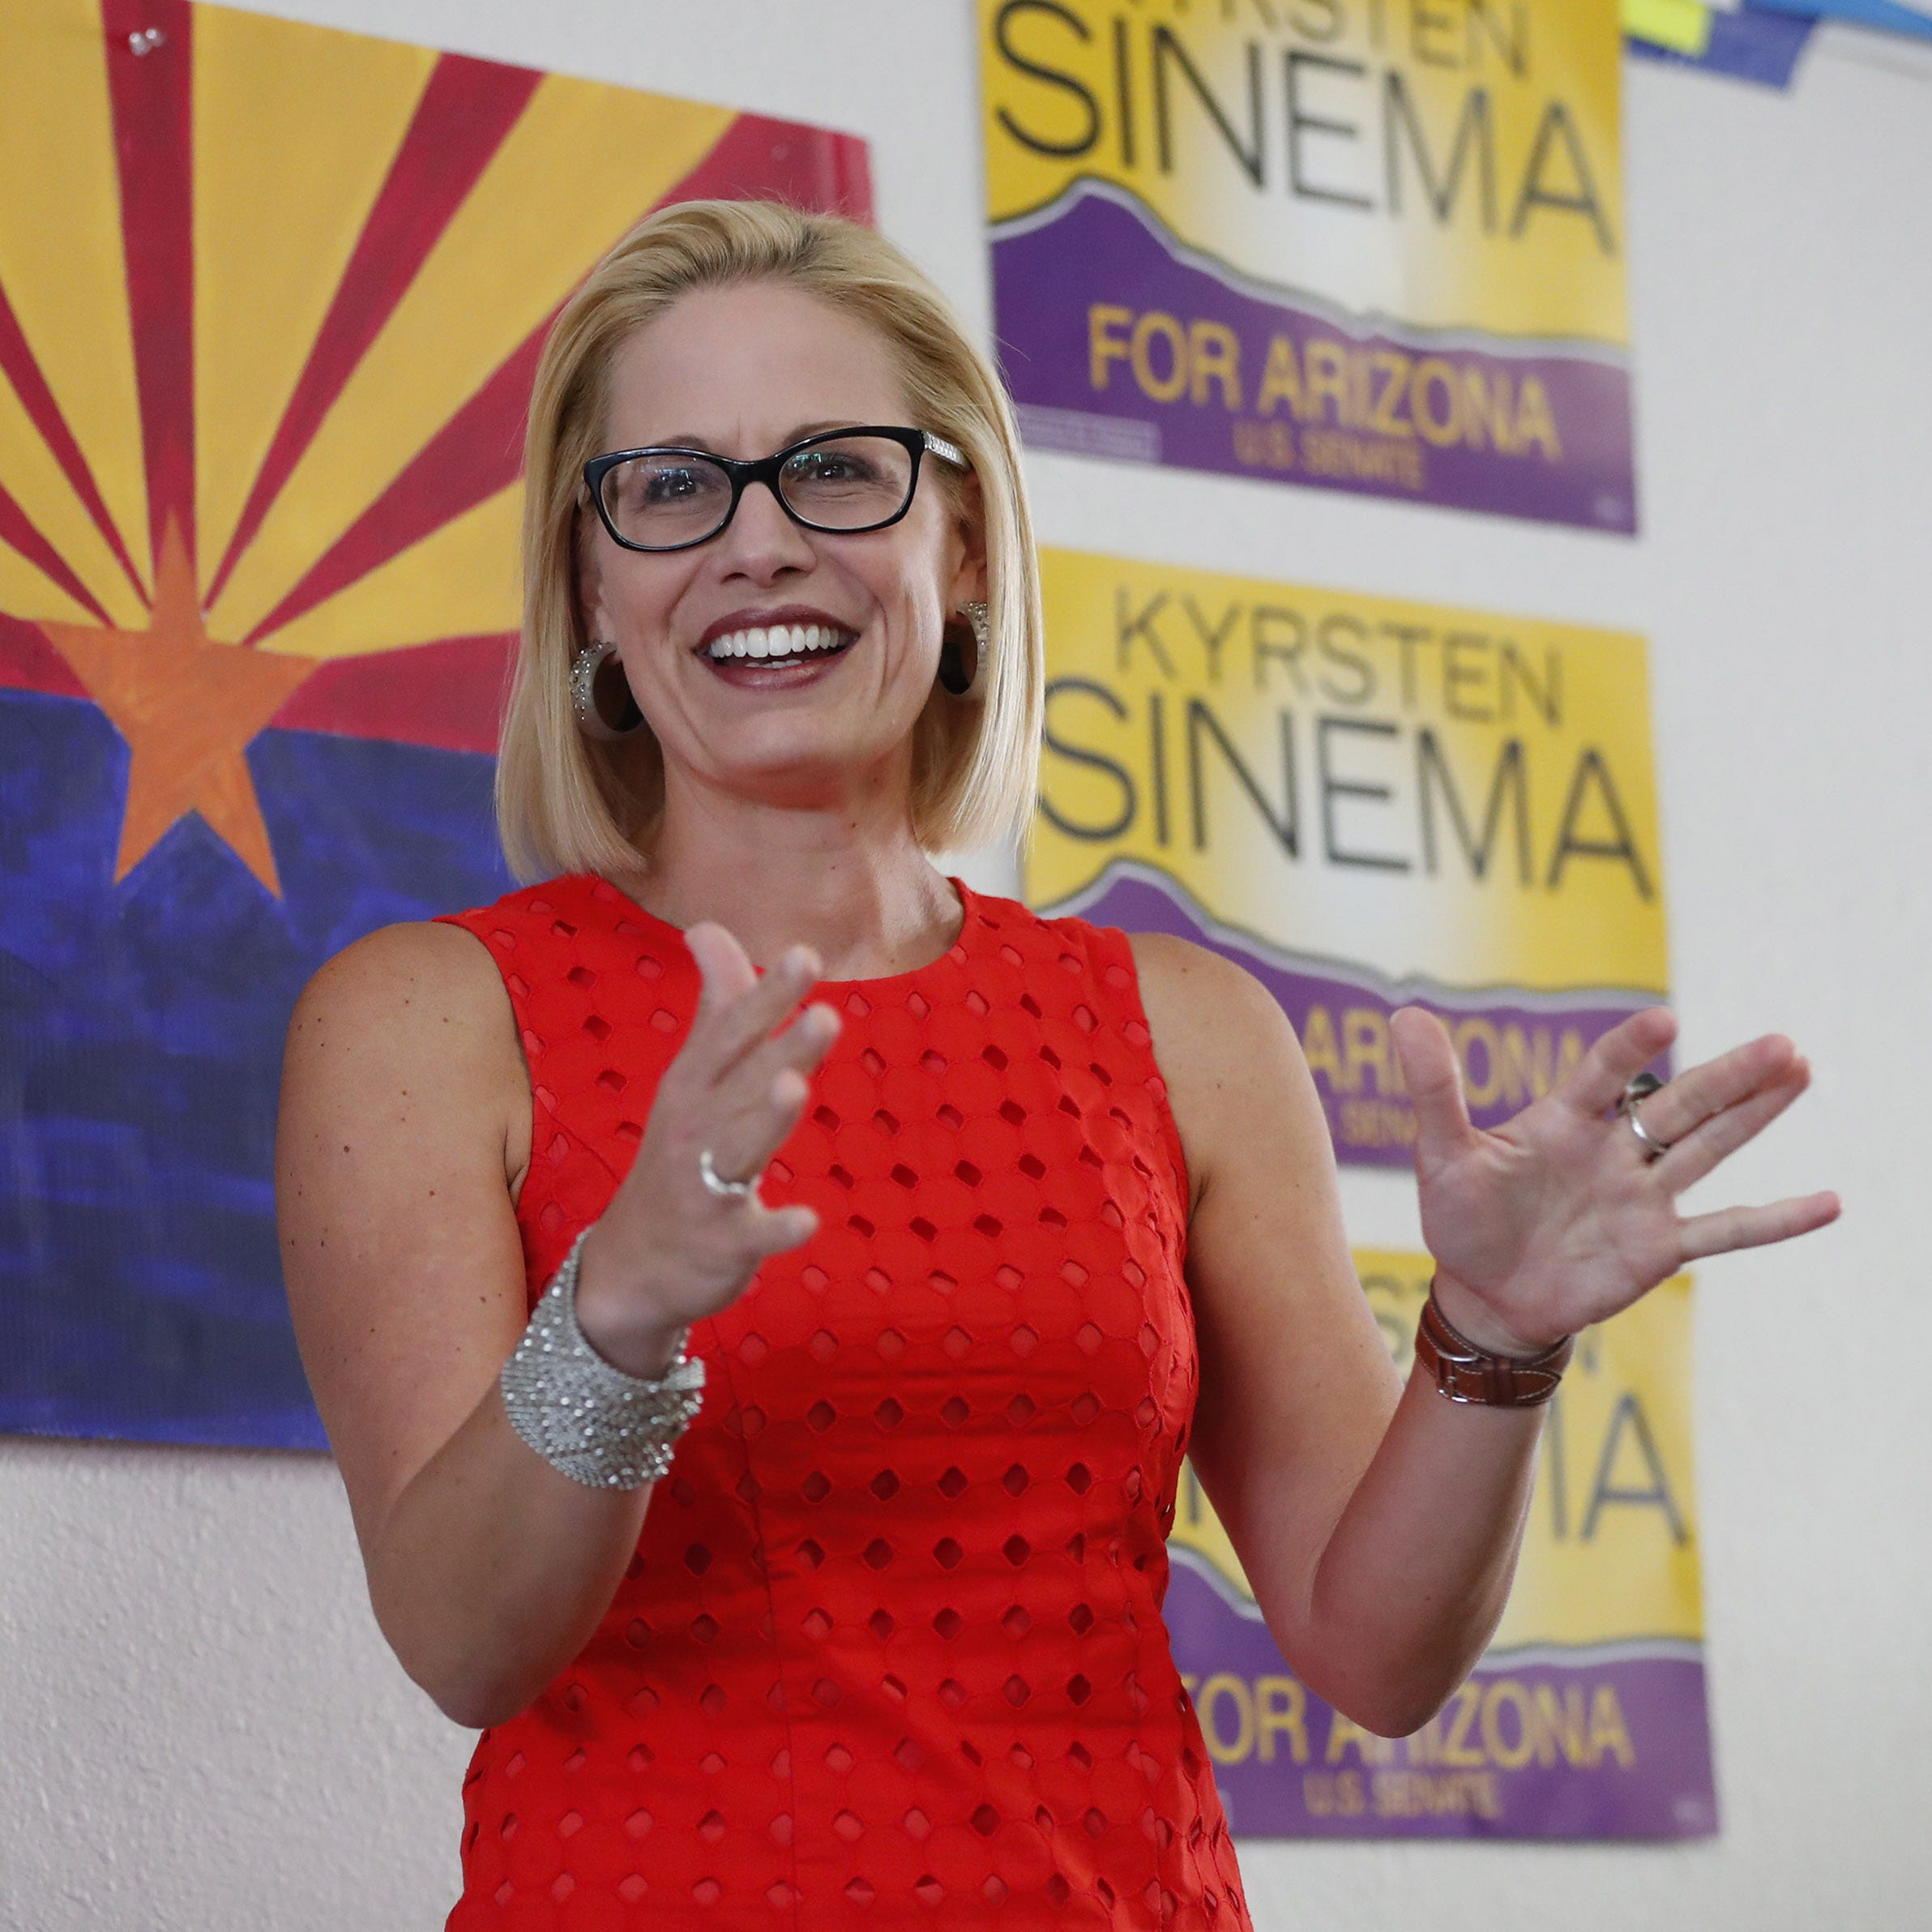 Arizona Senate race: Kyrsten Sinema makes closing argument to voters with 1-minute TV ad